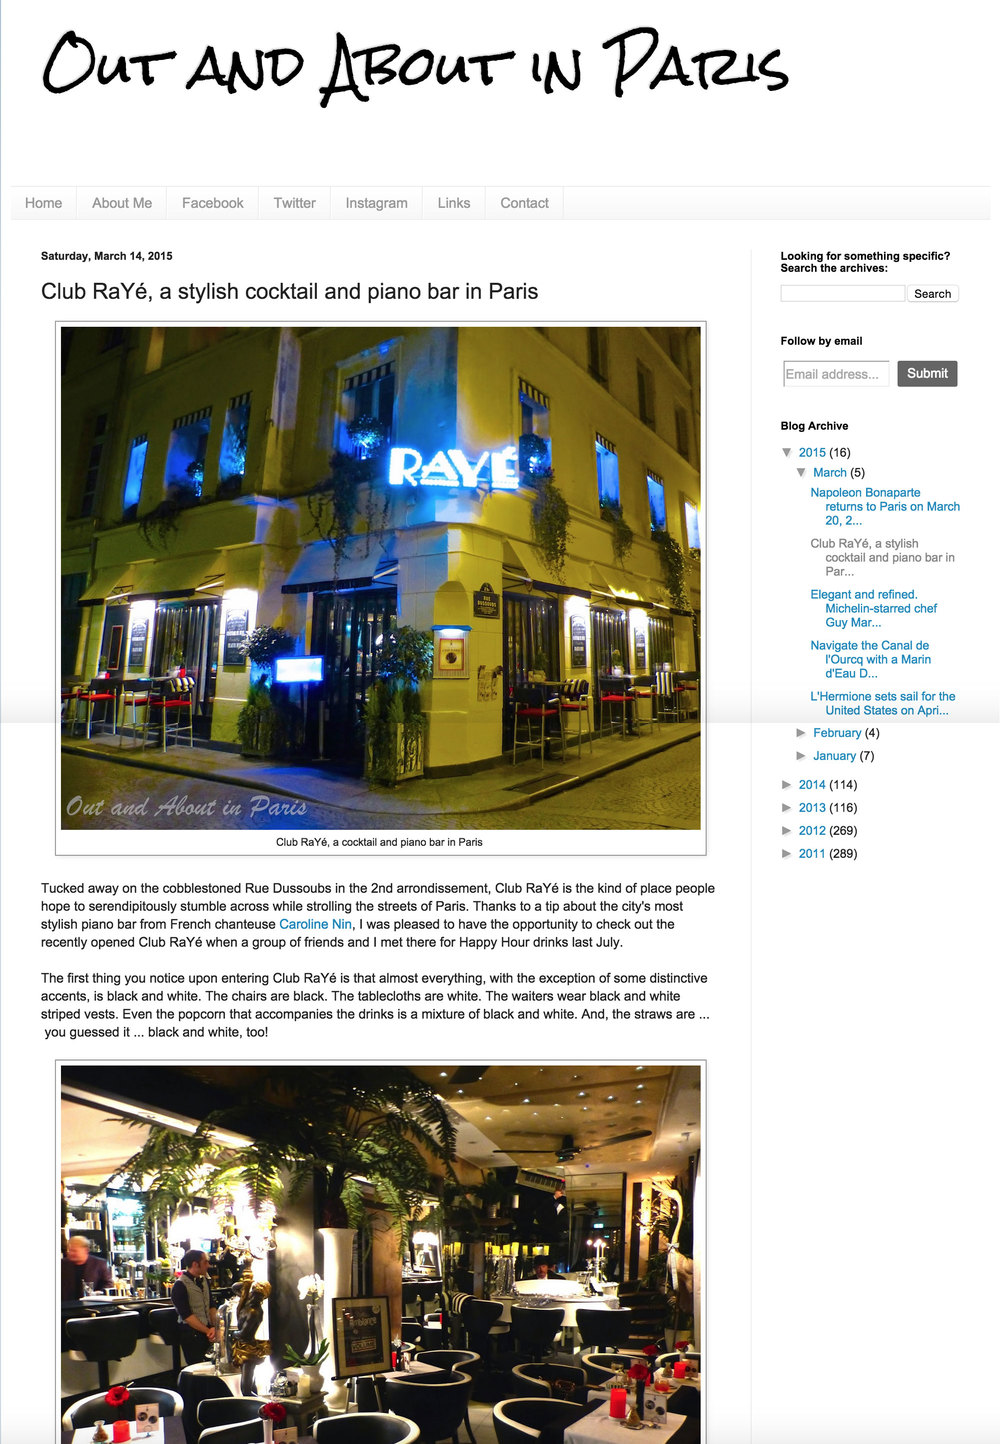 Out and about in paris - Mars 2015